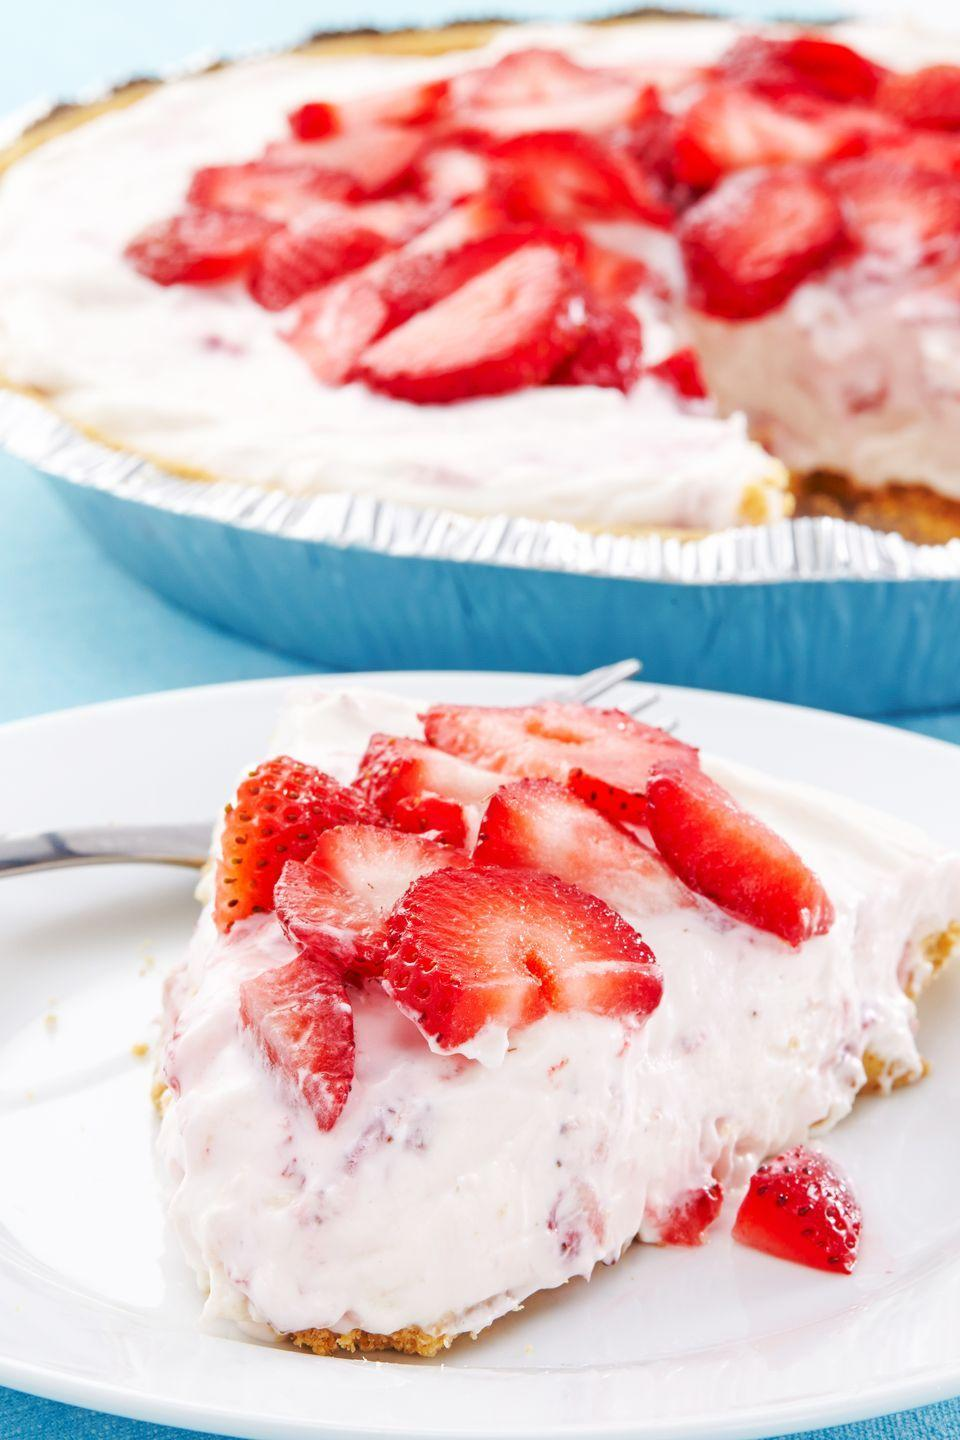 """<p>Mixing pureed strawberries into the cheesecake mixture gives it that lush pink color.</p><p>Get the recipe from <a href=""""https://www.delish.com/cooking/recipes/a43449/no-bake-strawberry-cheesecake-recipe/"""" rel=""""nofollow noopener"""" target=""""_blank"""" data-ylk=""""slk:Delish"""" class=""""link rapid-noclick-resp"""">Delish</a>.</p>"""